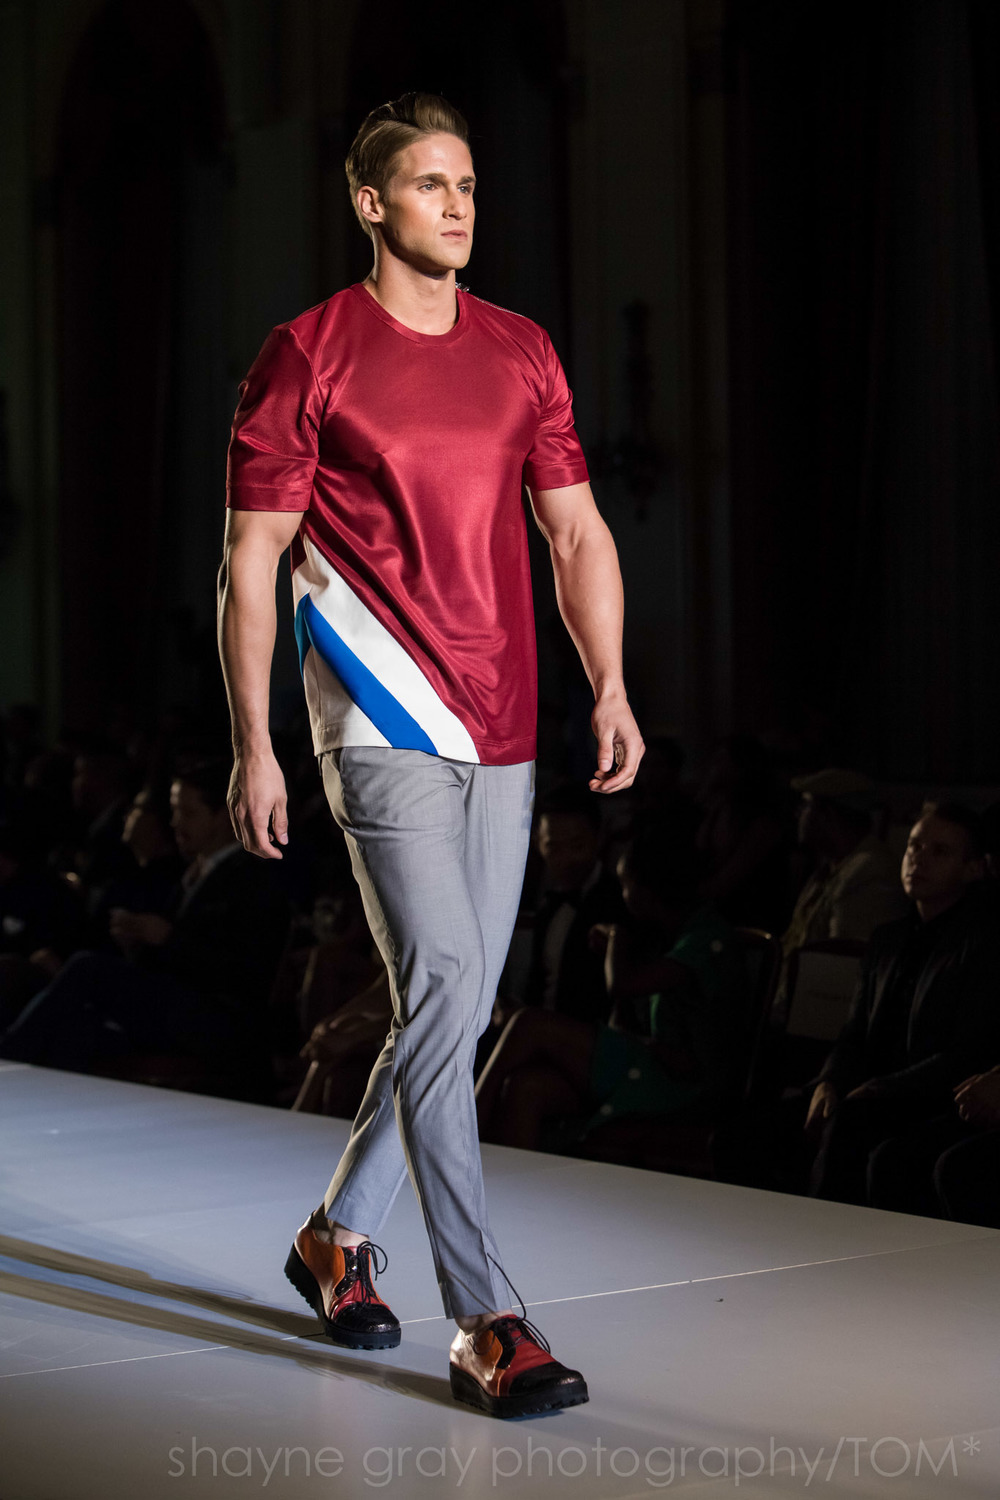 Shayne-Gray-Toronto-men's-fashion_week-TOM-noel-crisostomo-8481.jpg